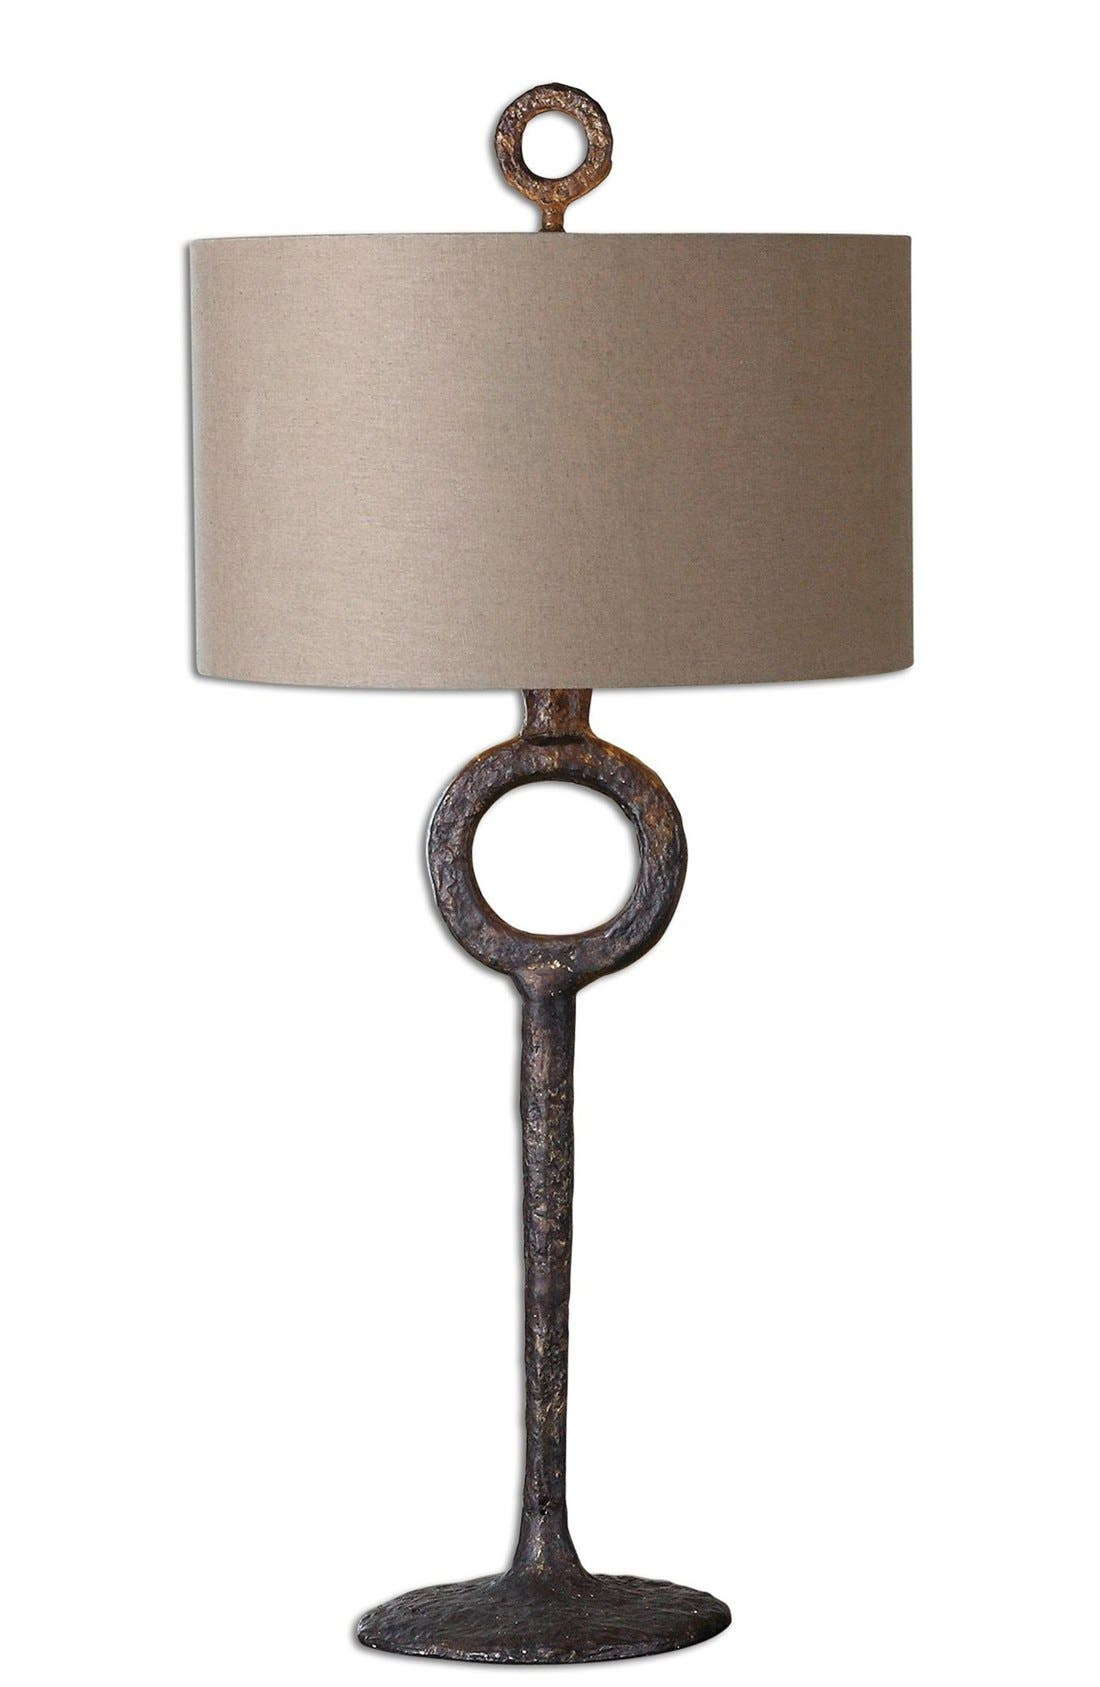 uttermost cast iron table lamp - Uttermost Lamps